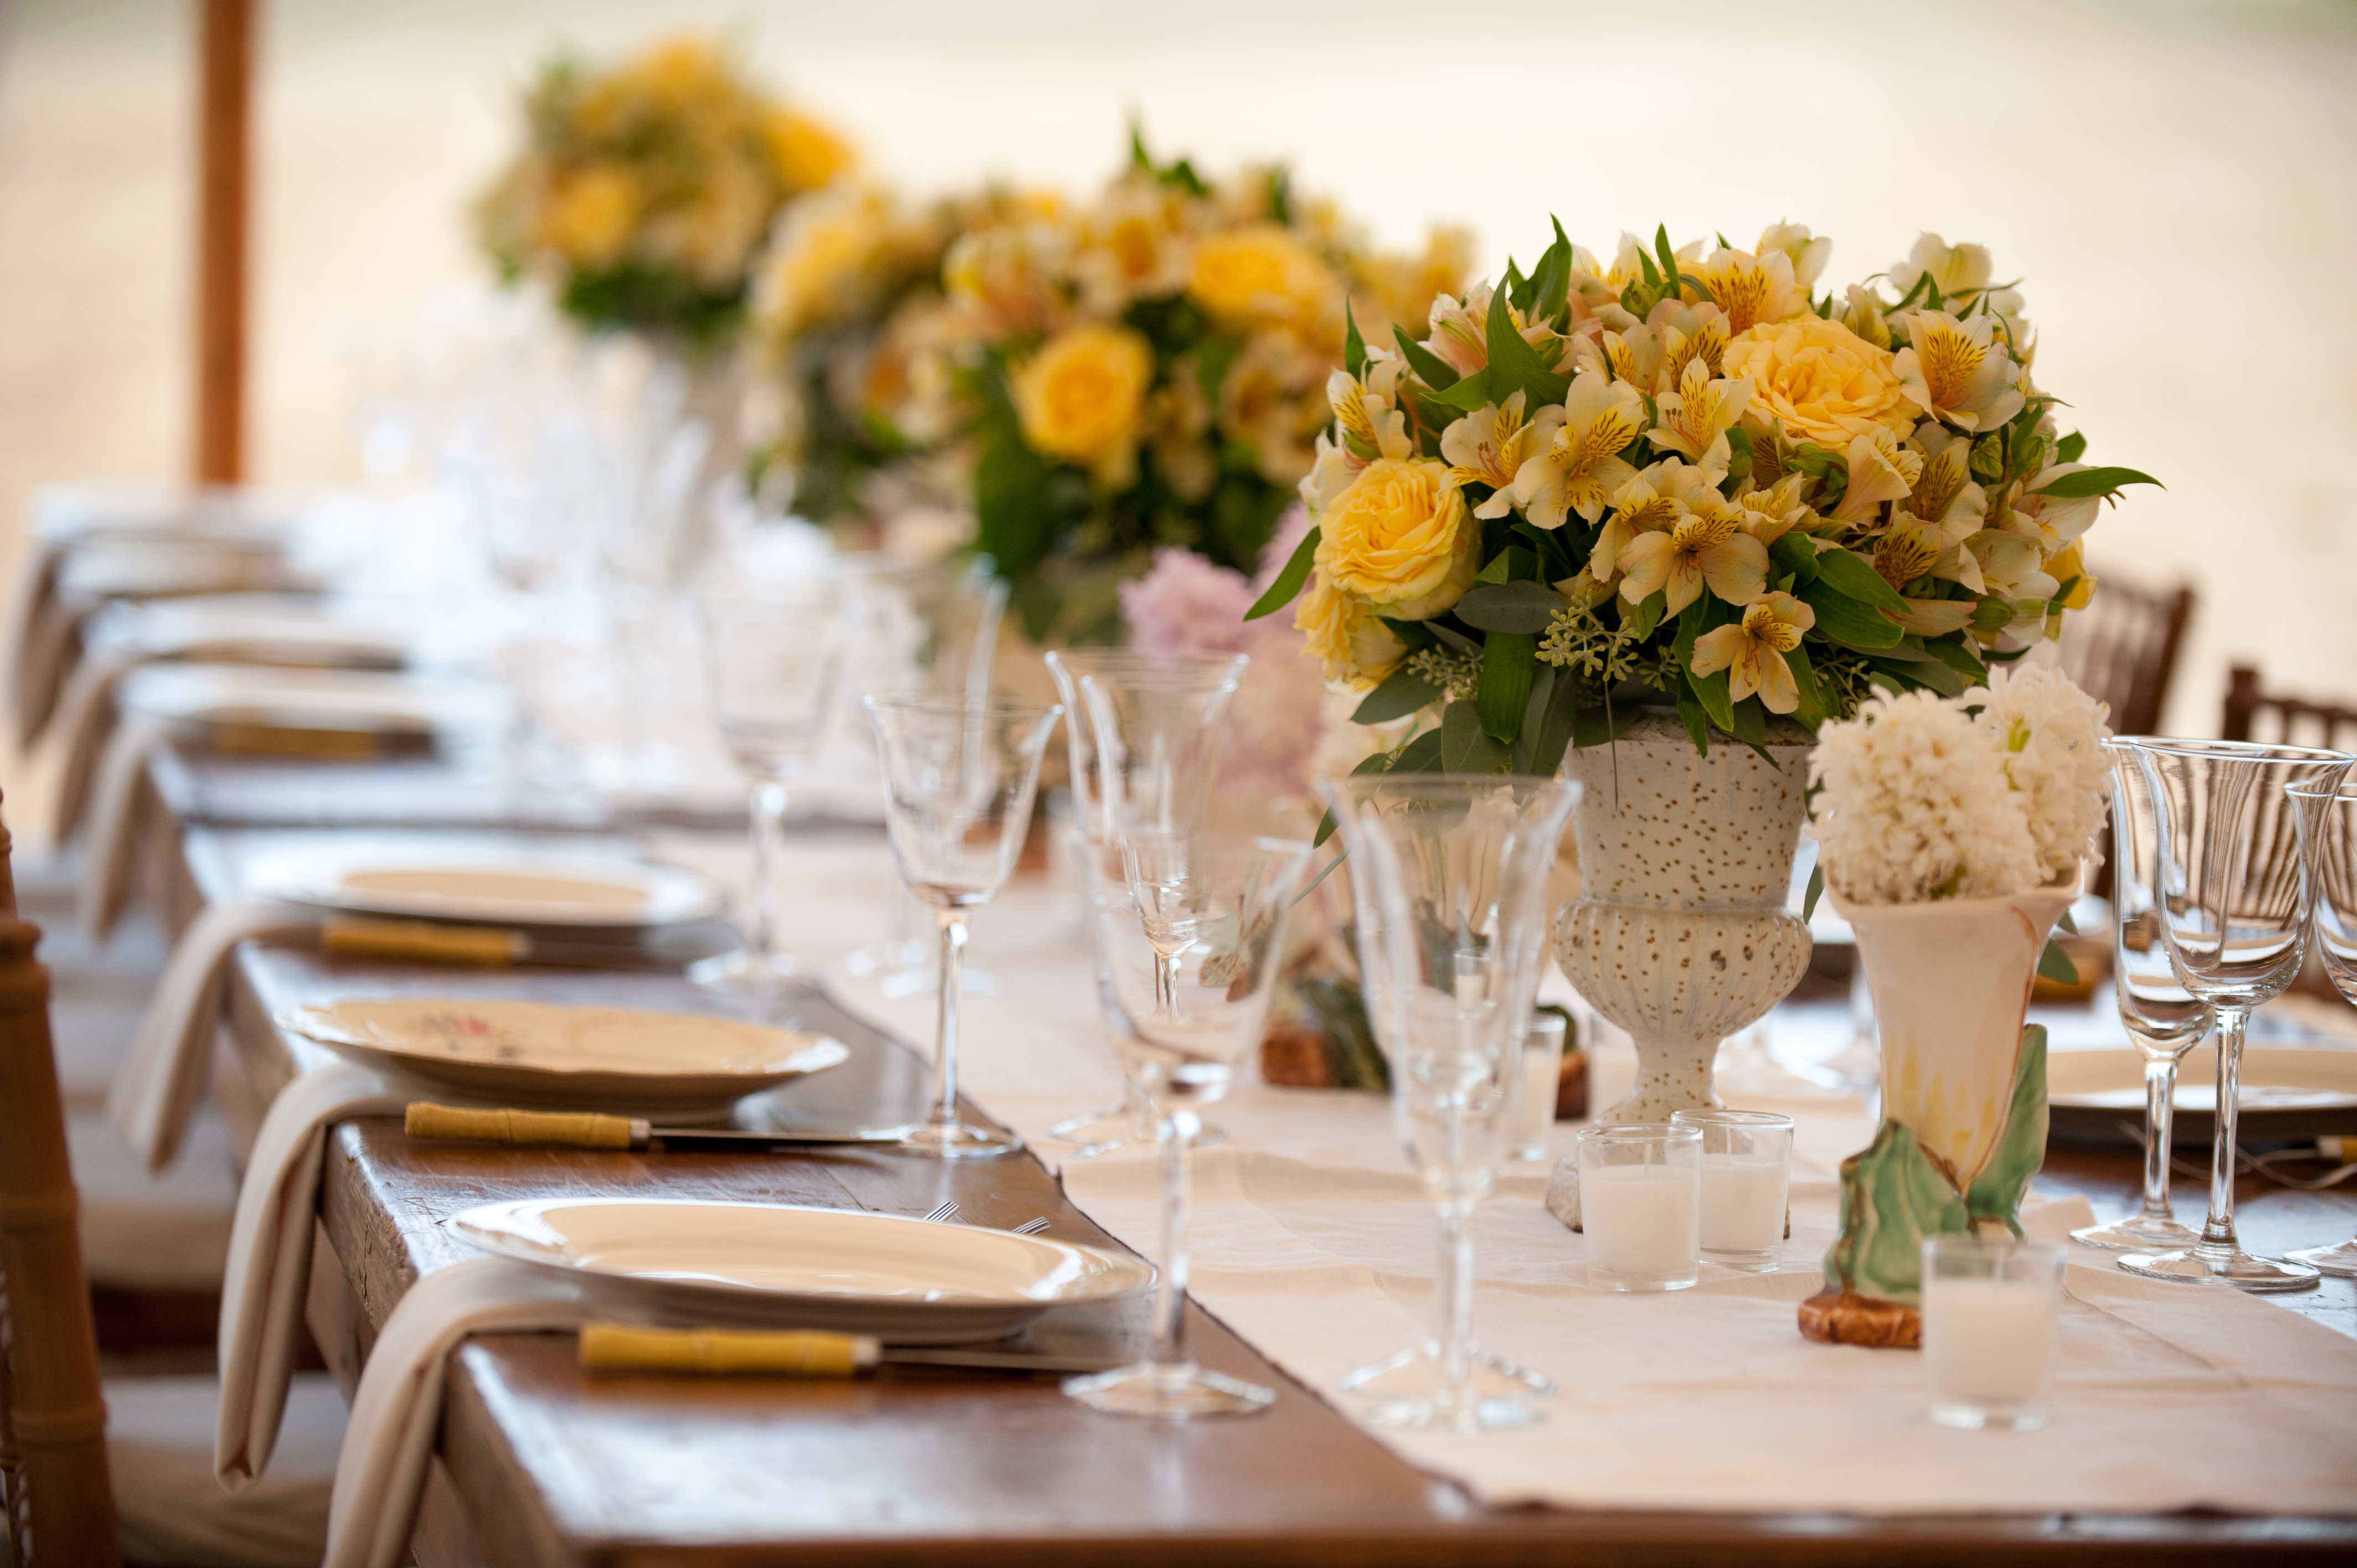 Location: East Moriches, New York / Florist And Tablescape Design: Karen  Lenahan Designs Assisted By Daria Culver Events / Rentals: Party Rental  Ltd. ...